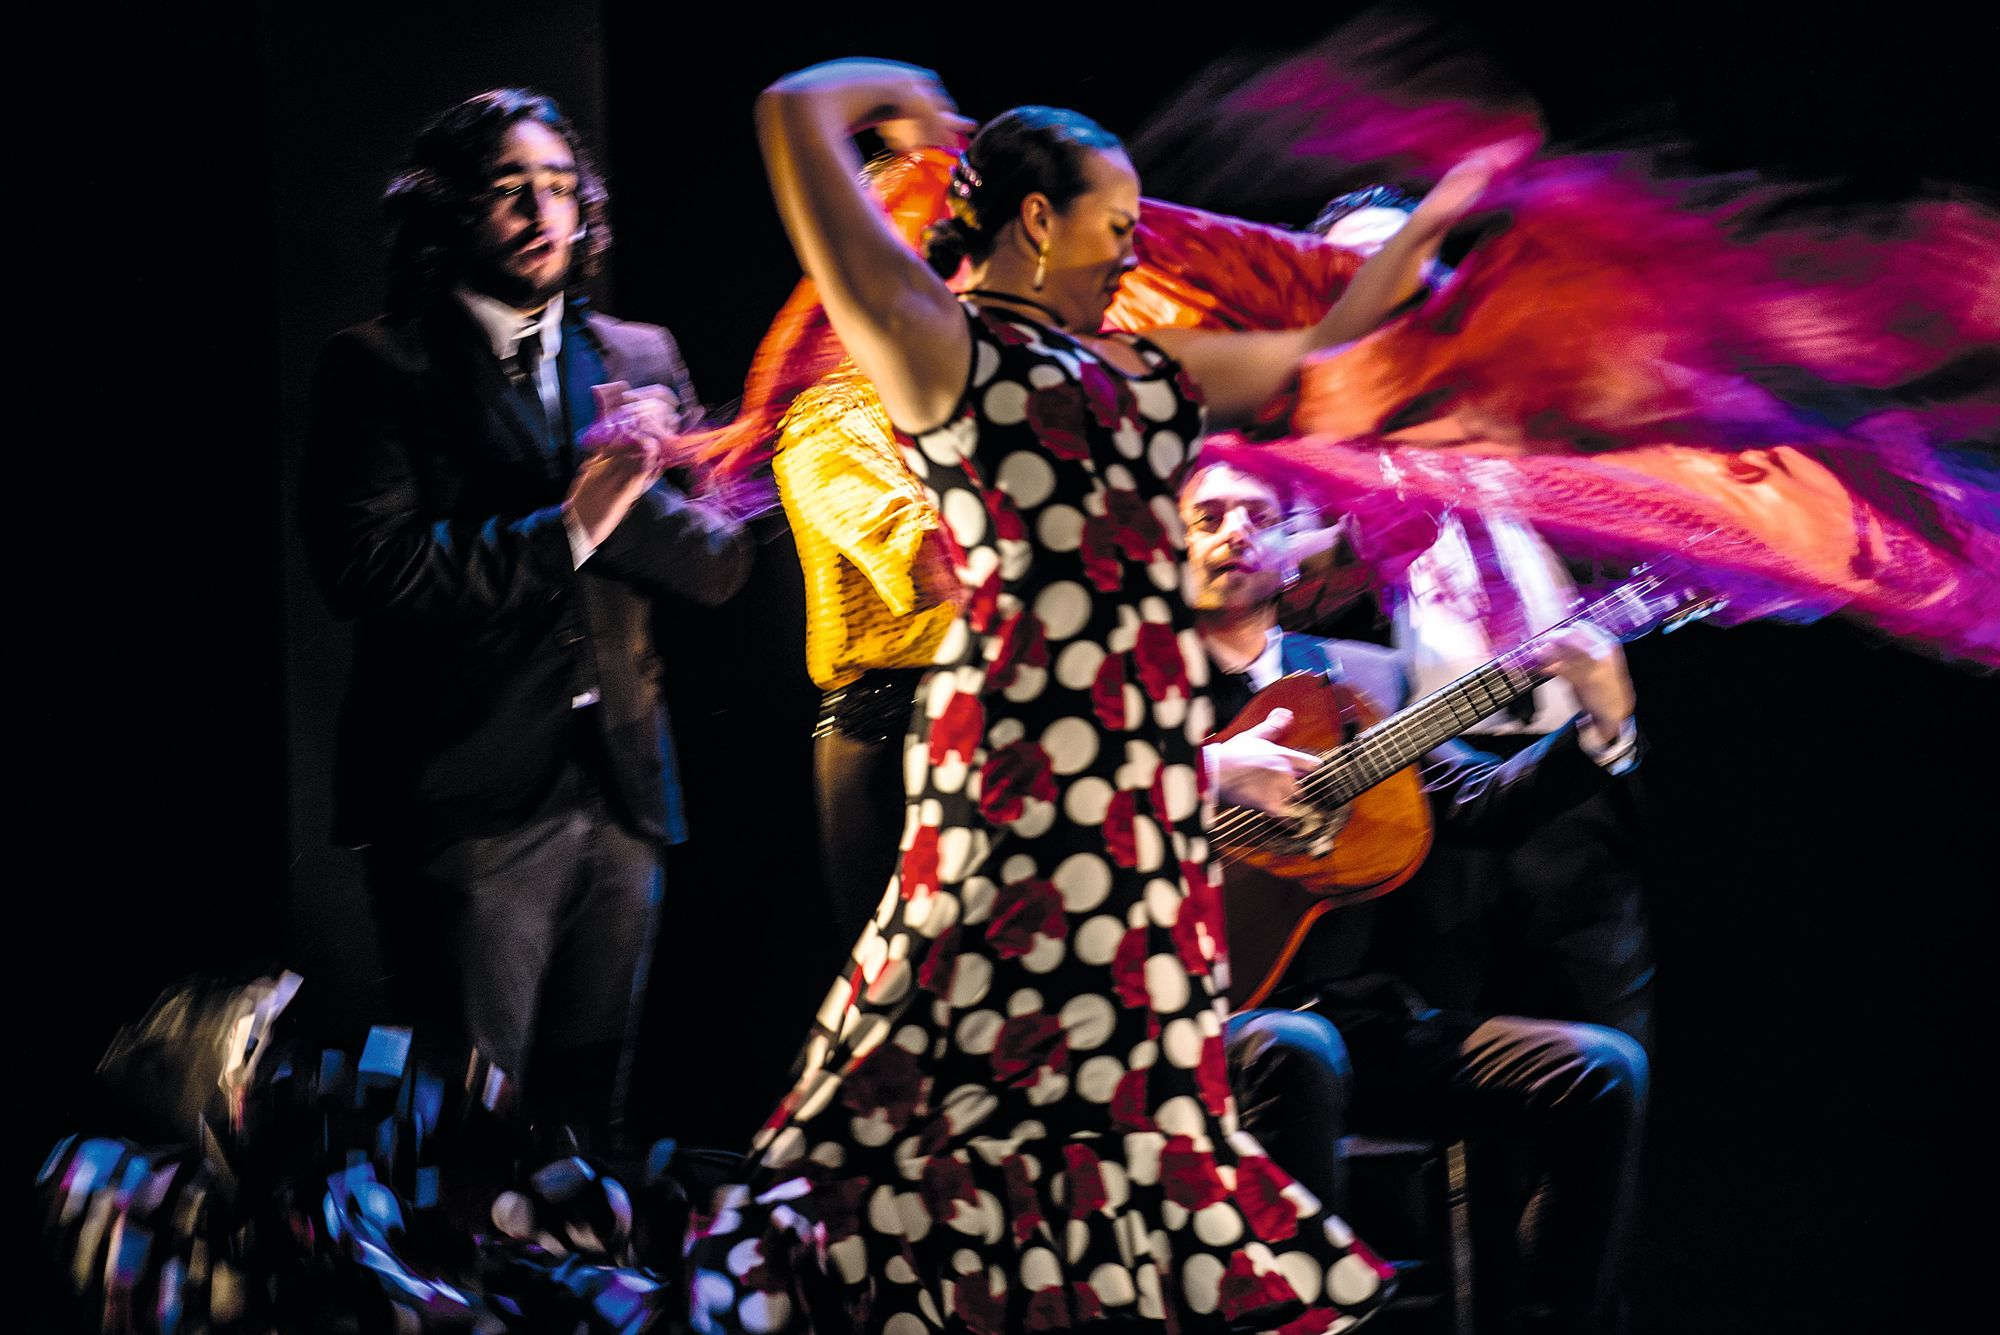 Espectáculo de flamenco Emociones, Teatro Flamenco Madrid, 2019.